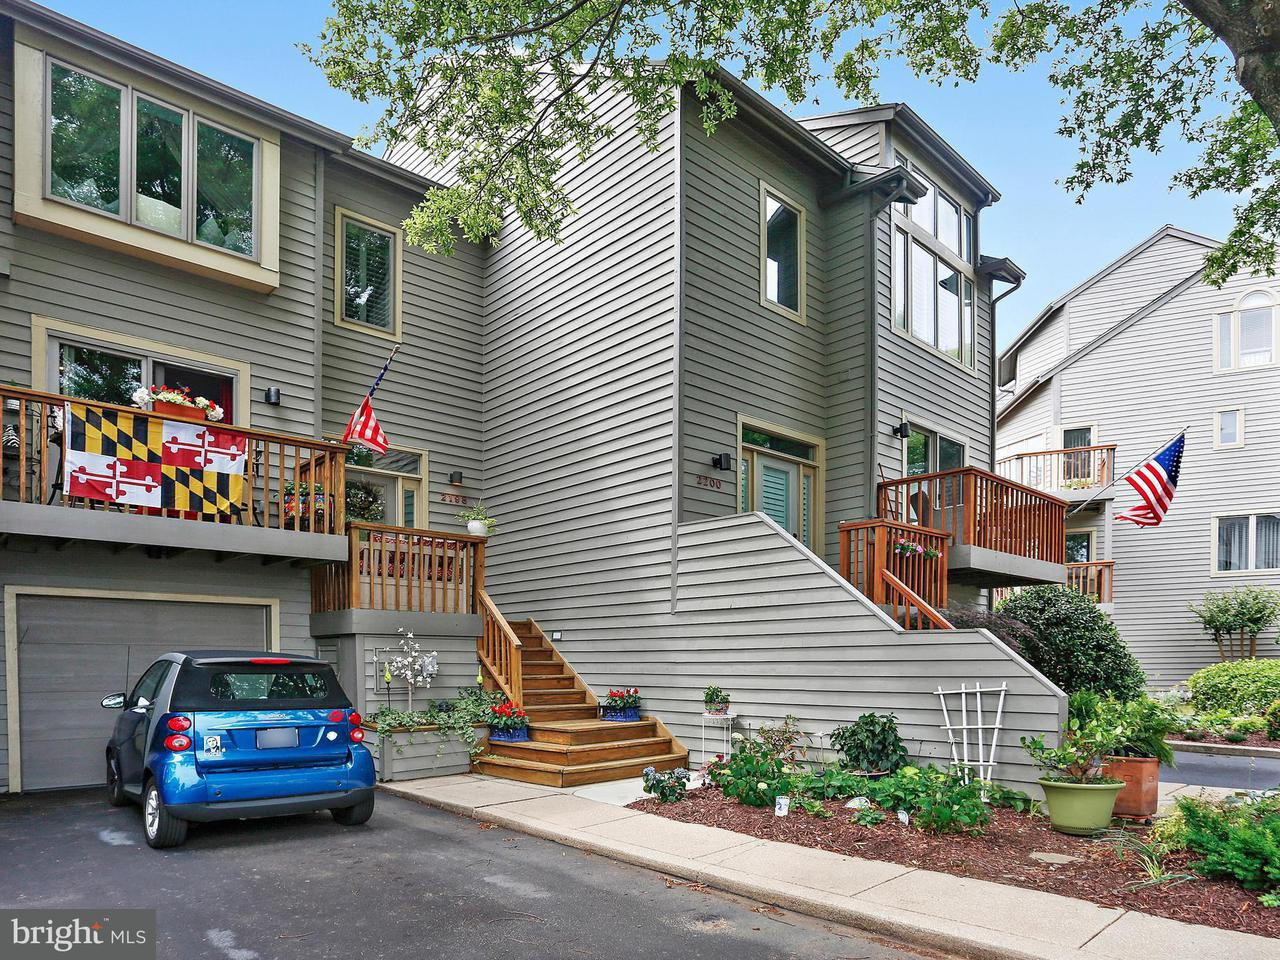 Townhouse for Sale at 2198 Chesapeake Harbour Dr E 2198 Chesapeake Harbour Dr E Annapolis, Maryland 21403 United States